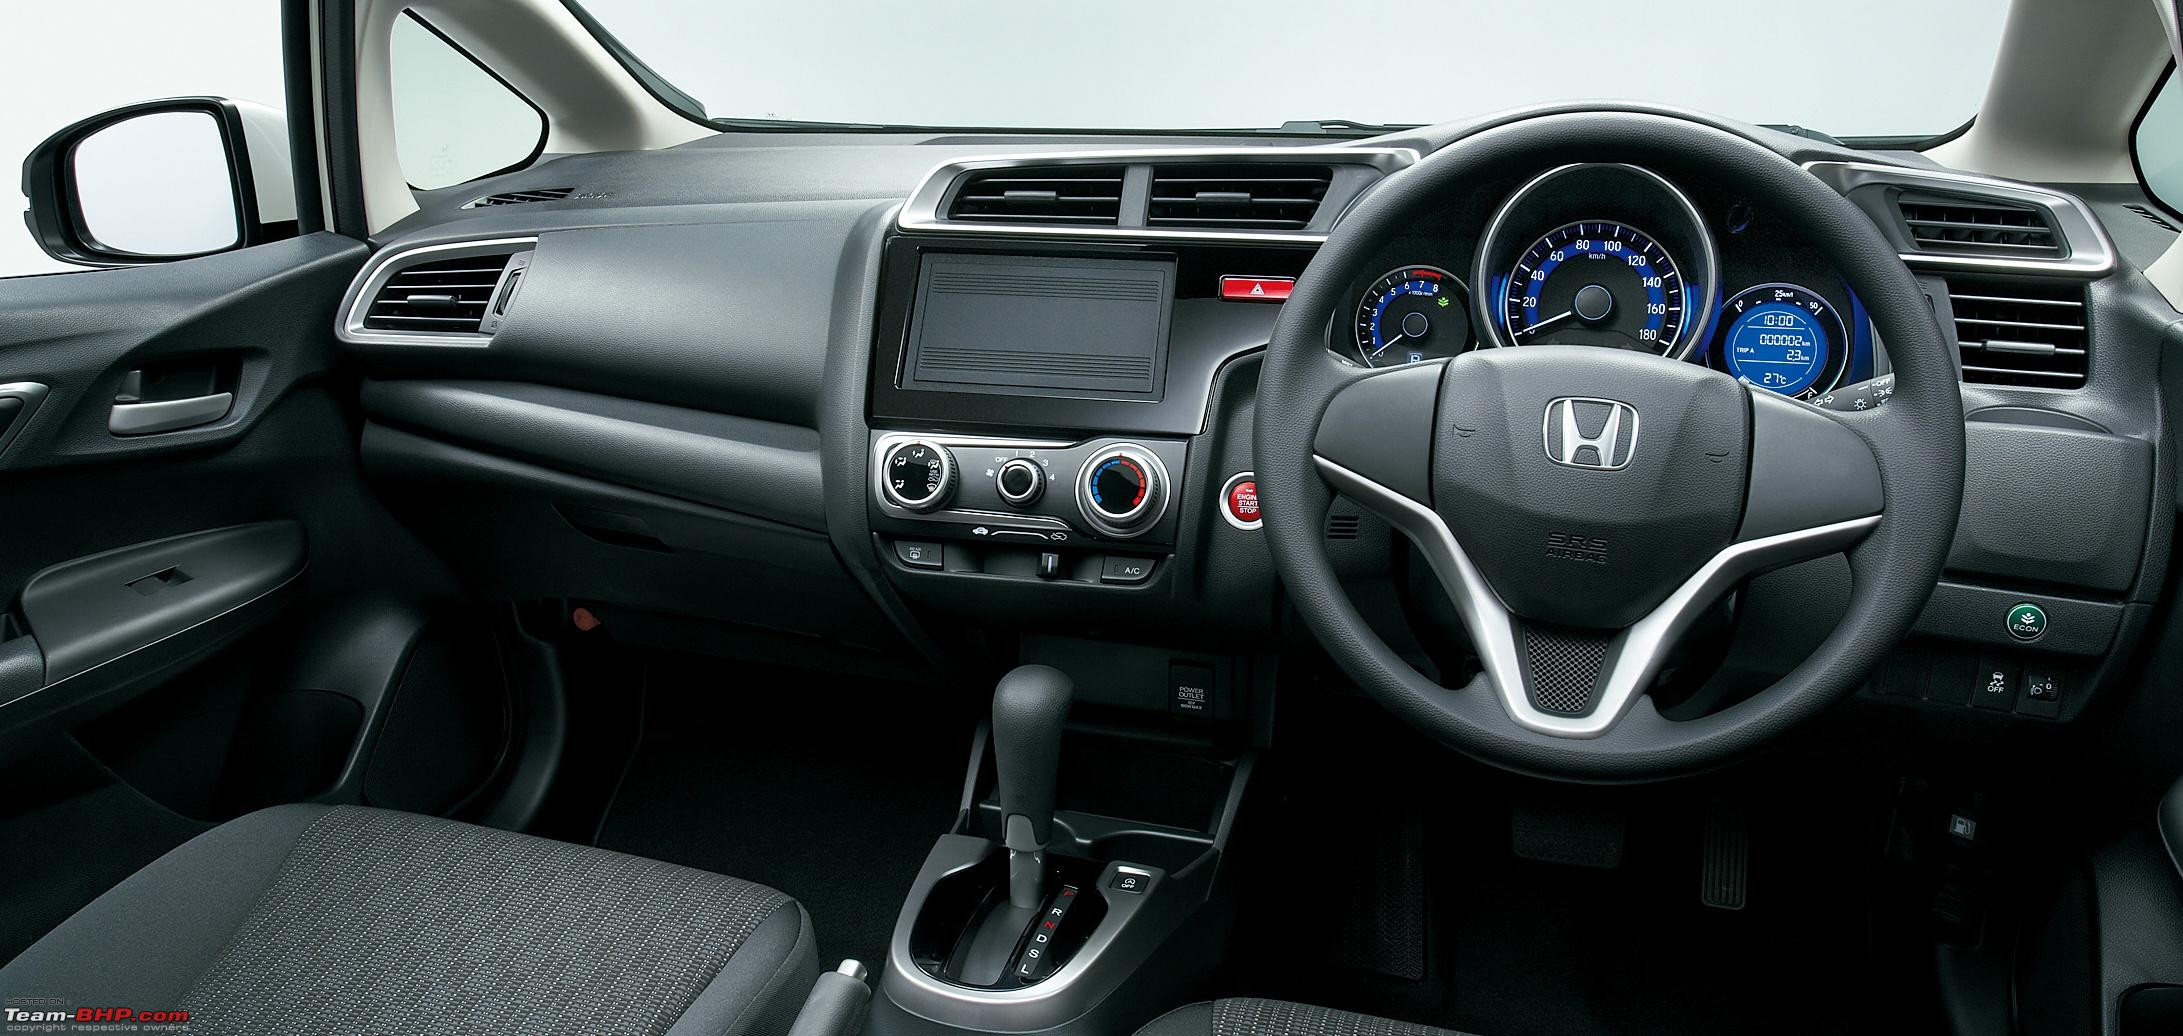 Honda Fit  Interior Dashboard